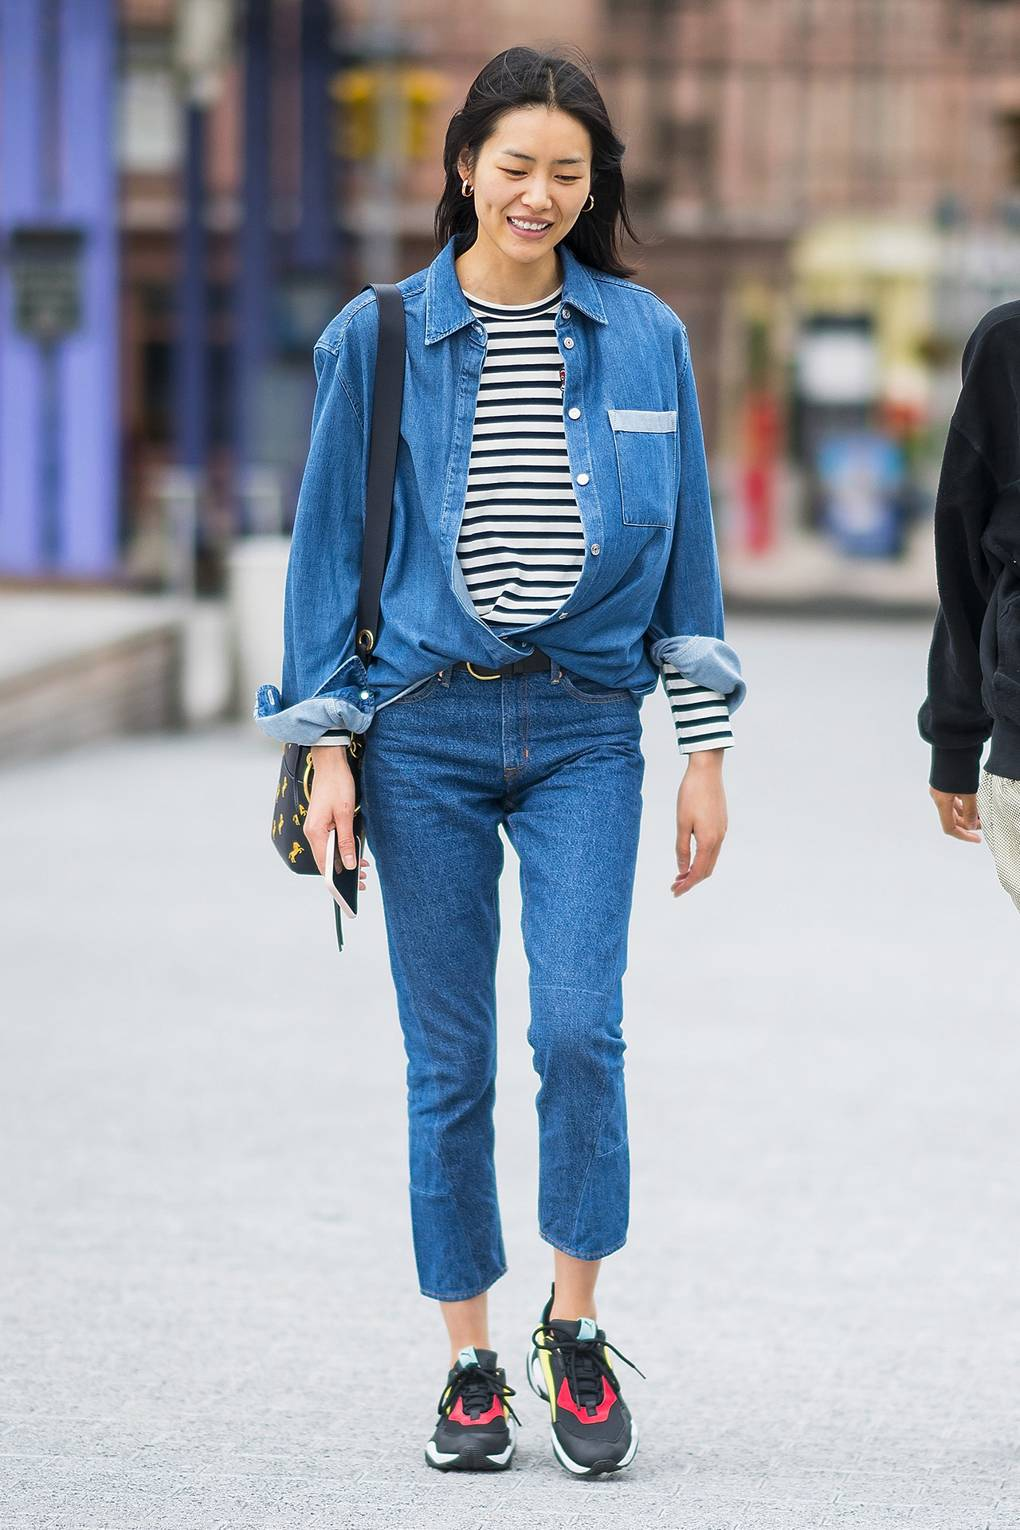 cf48efee66 The Best Celebrity Double Denim Looks Of All Time | British Vogue